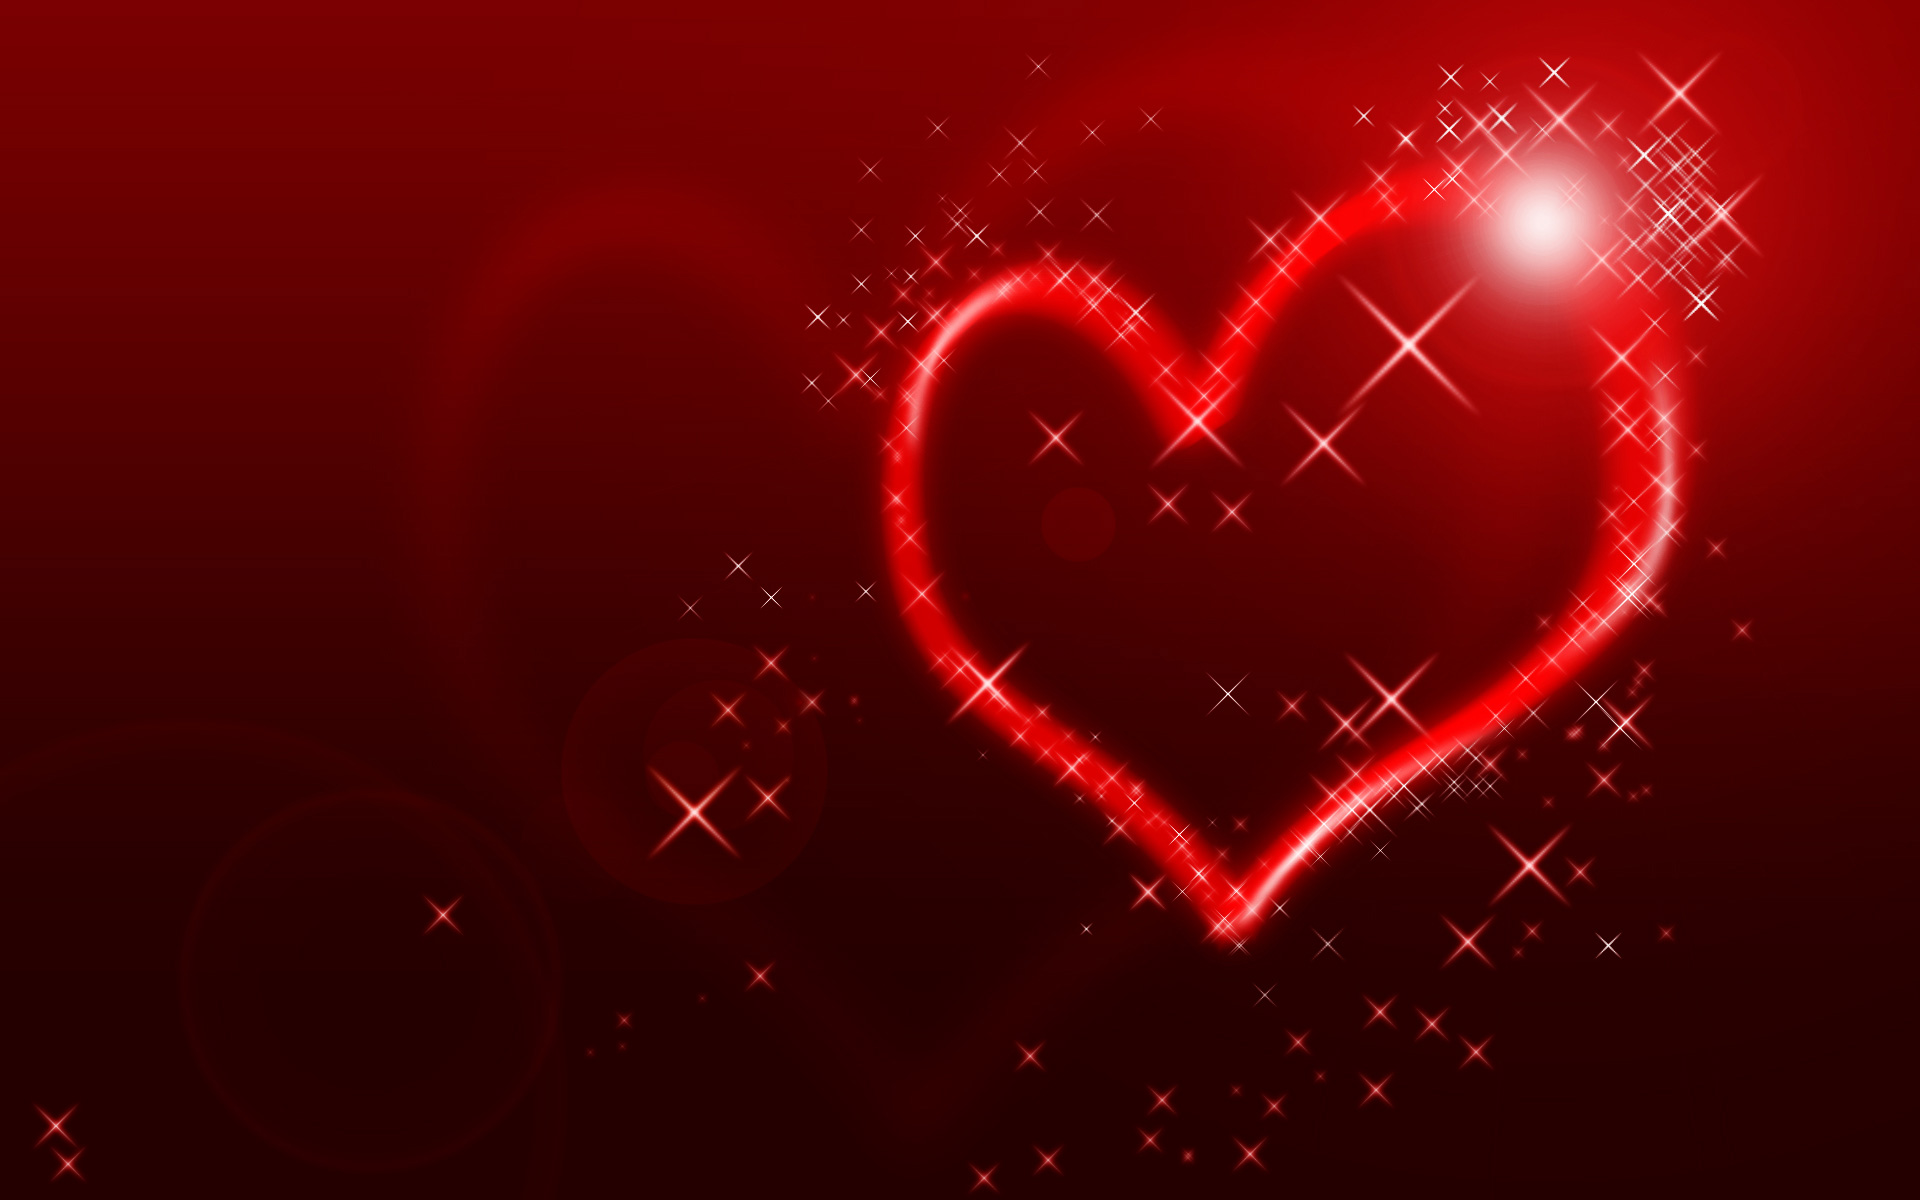 abstract valentine background with heartsjpghearts 1920x1200